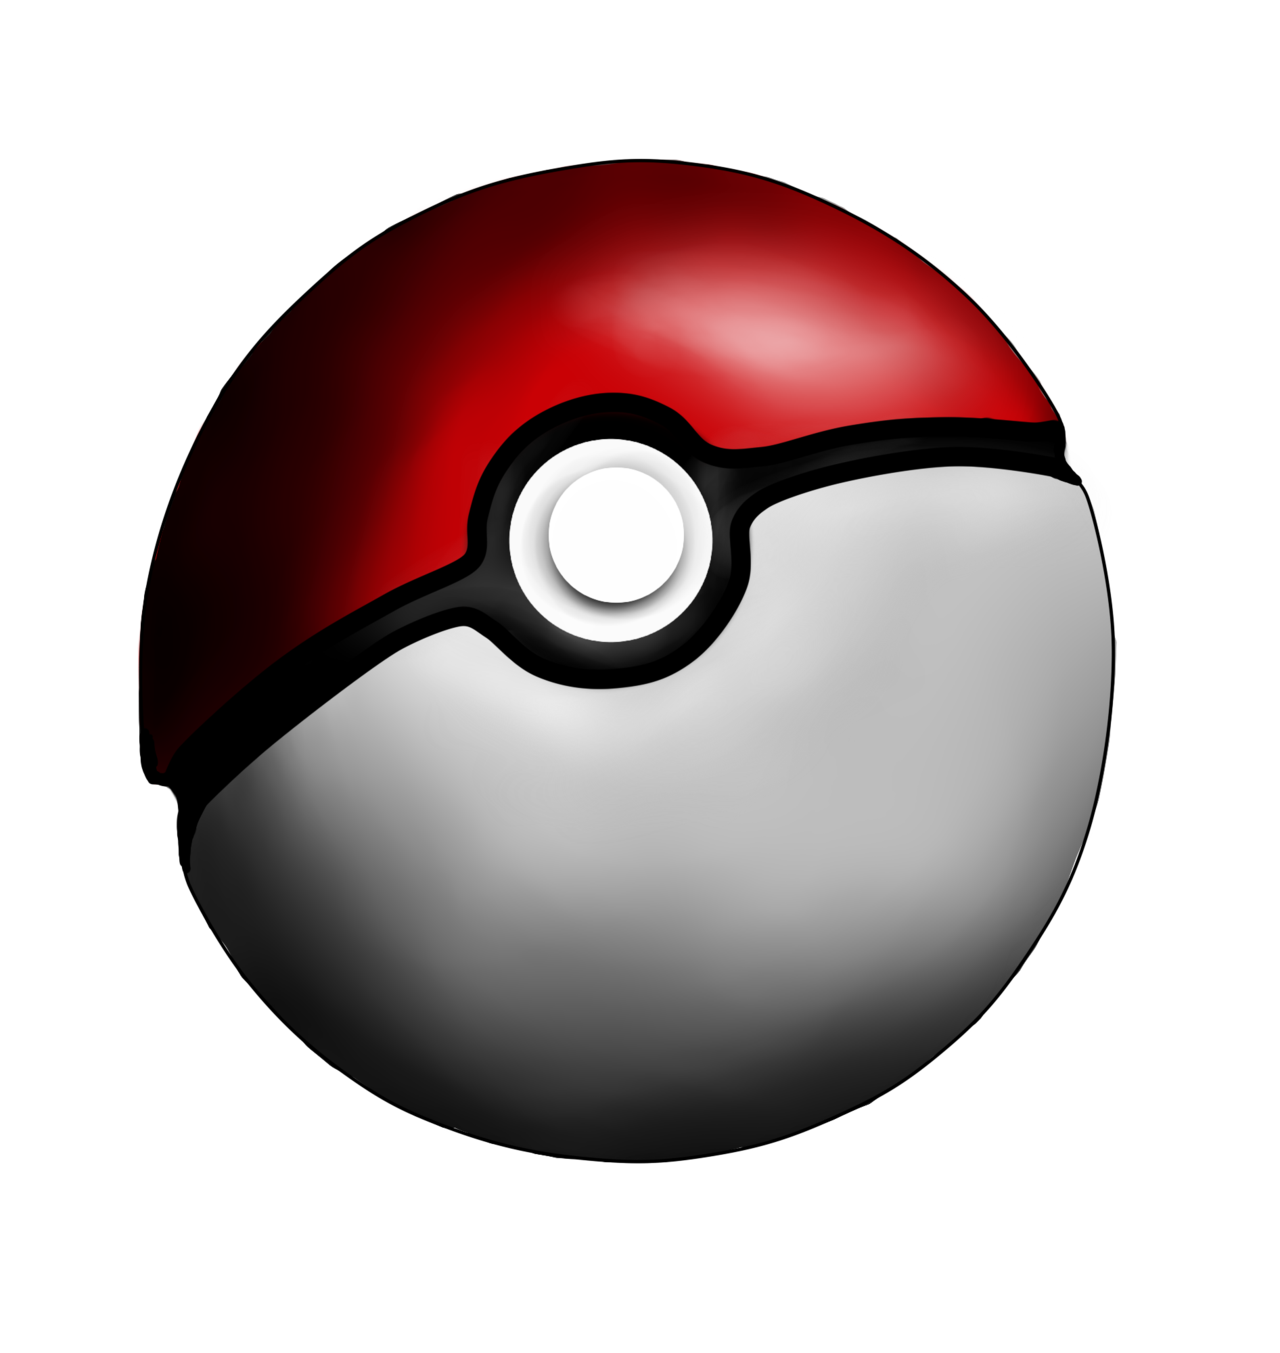 Pokeball clipart silhouette. Png image purepng free